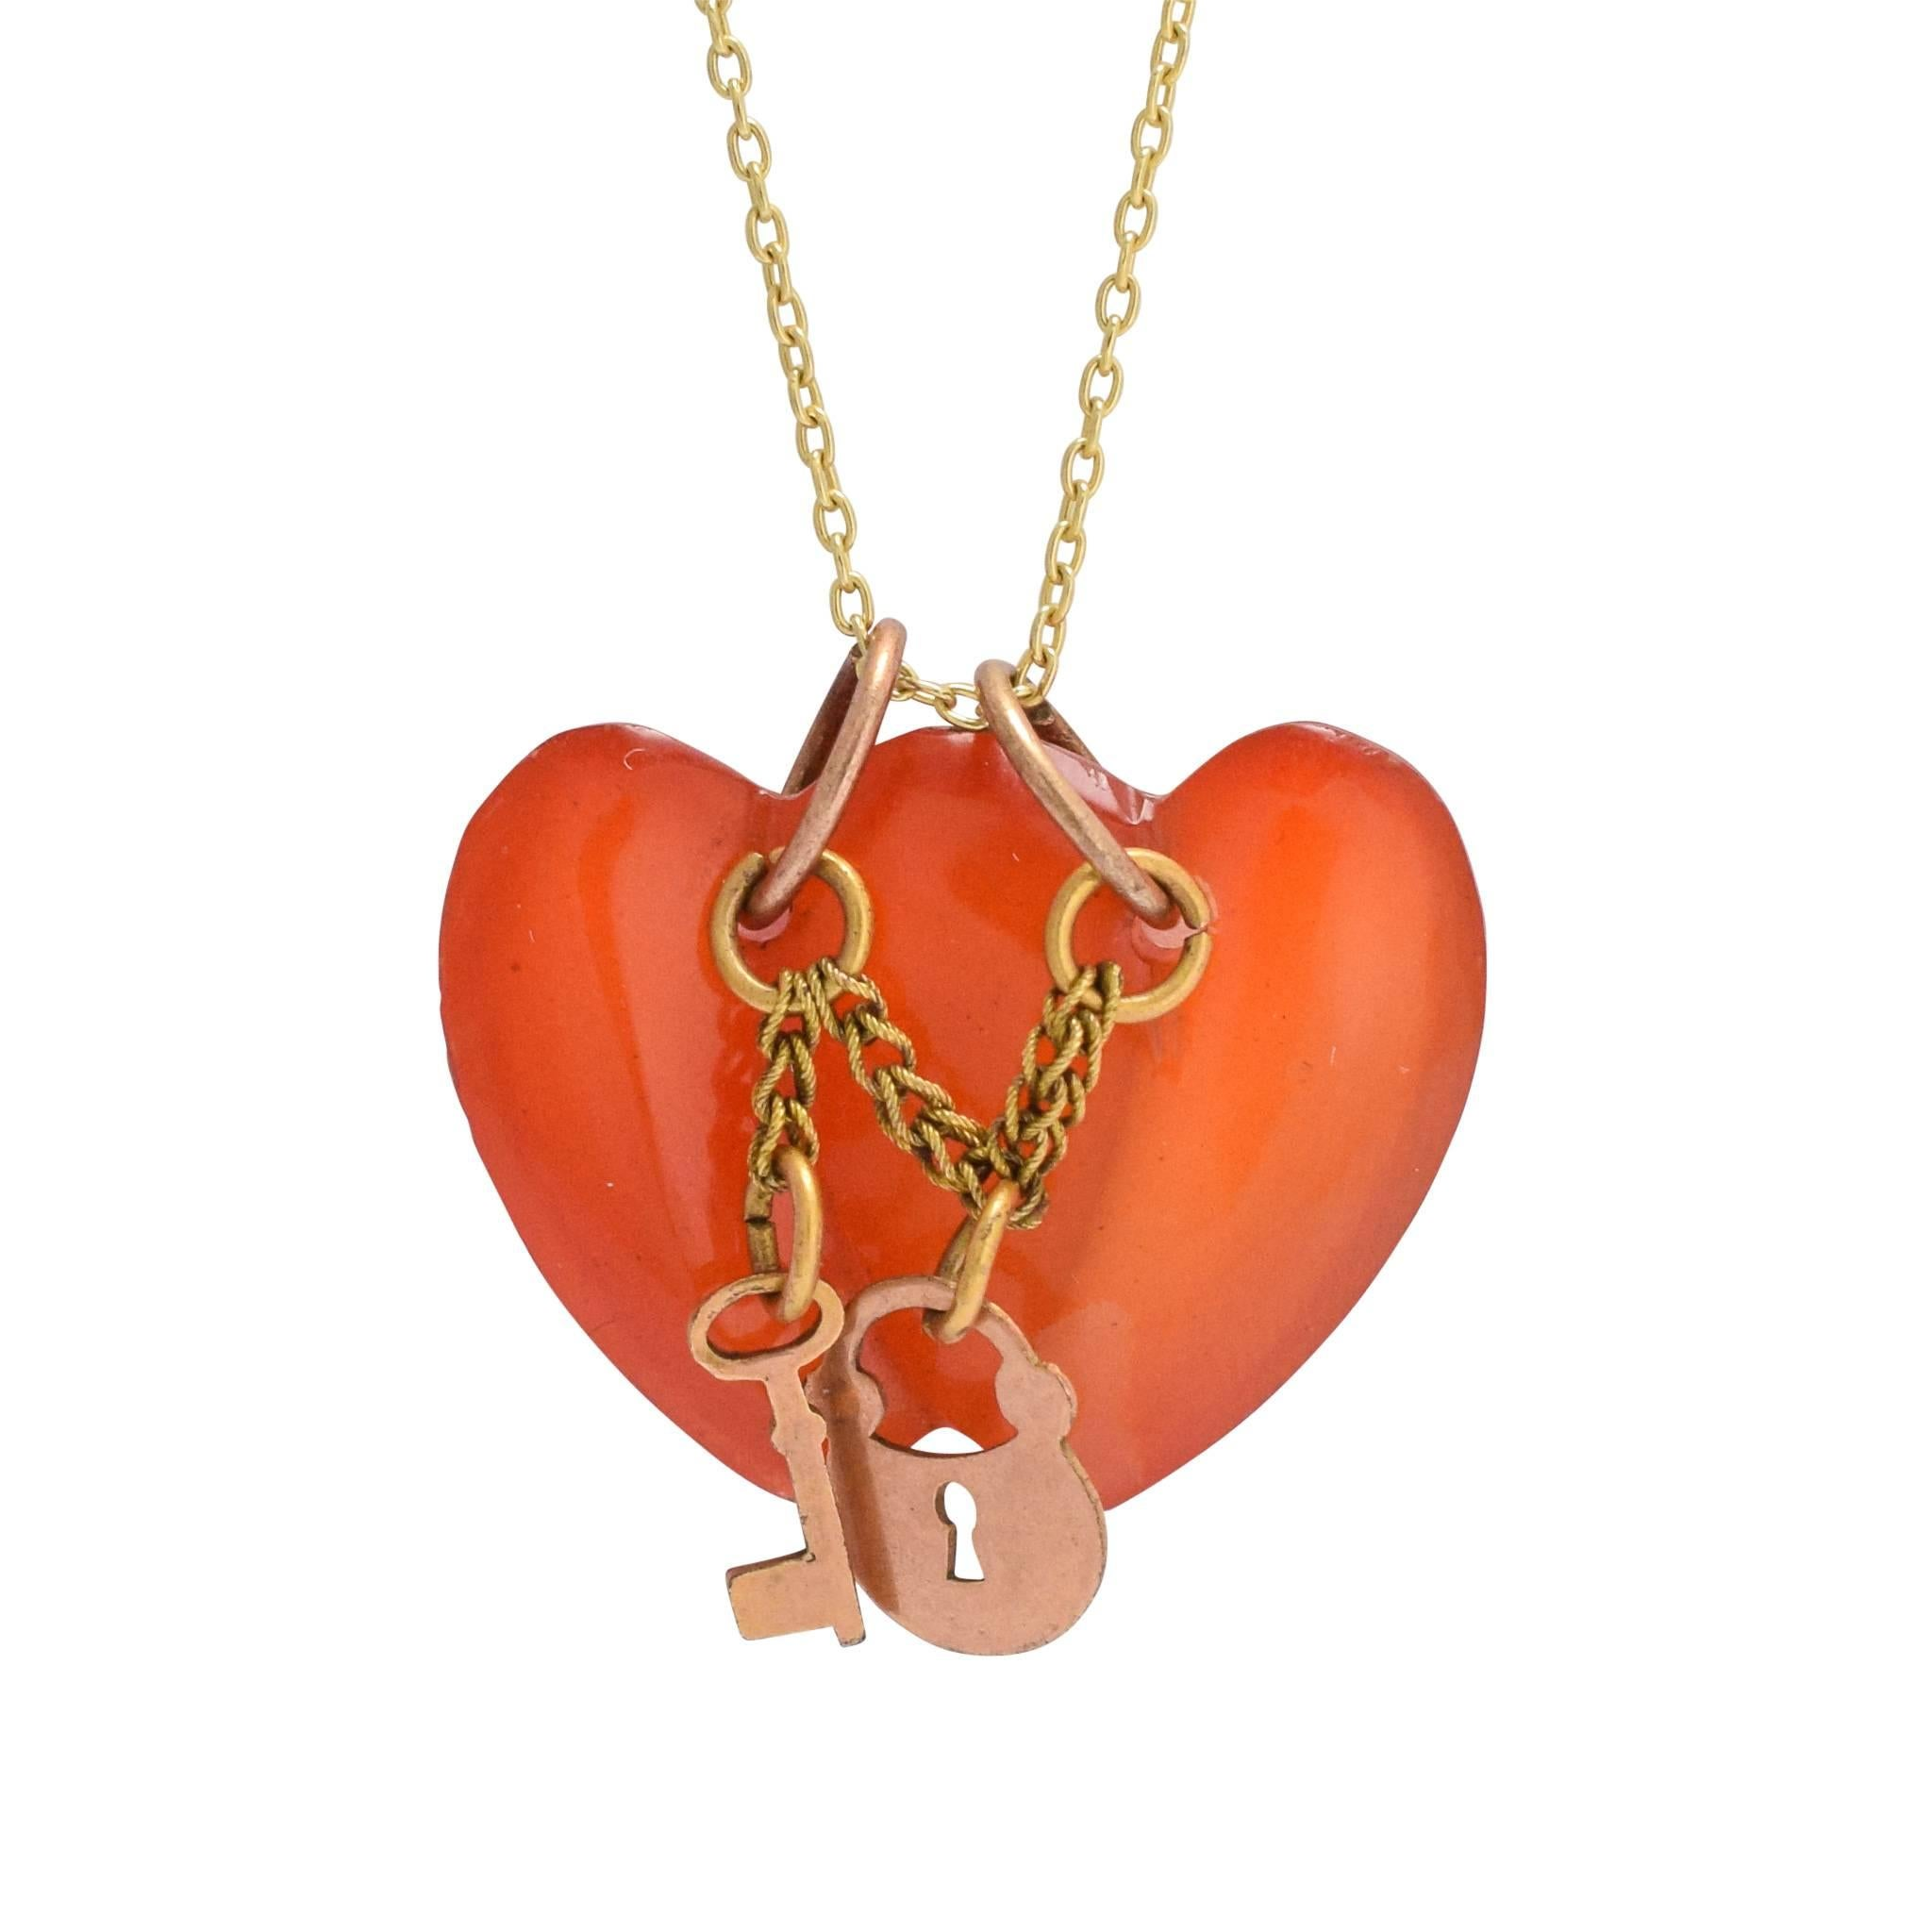 Antique Victorian Carnelian Double Heart Charm Pendant Necklace At 1Stdibs